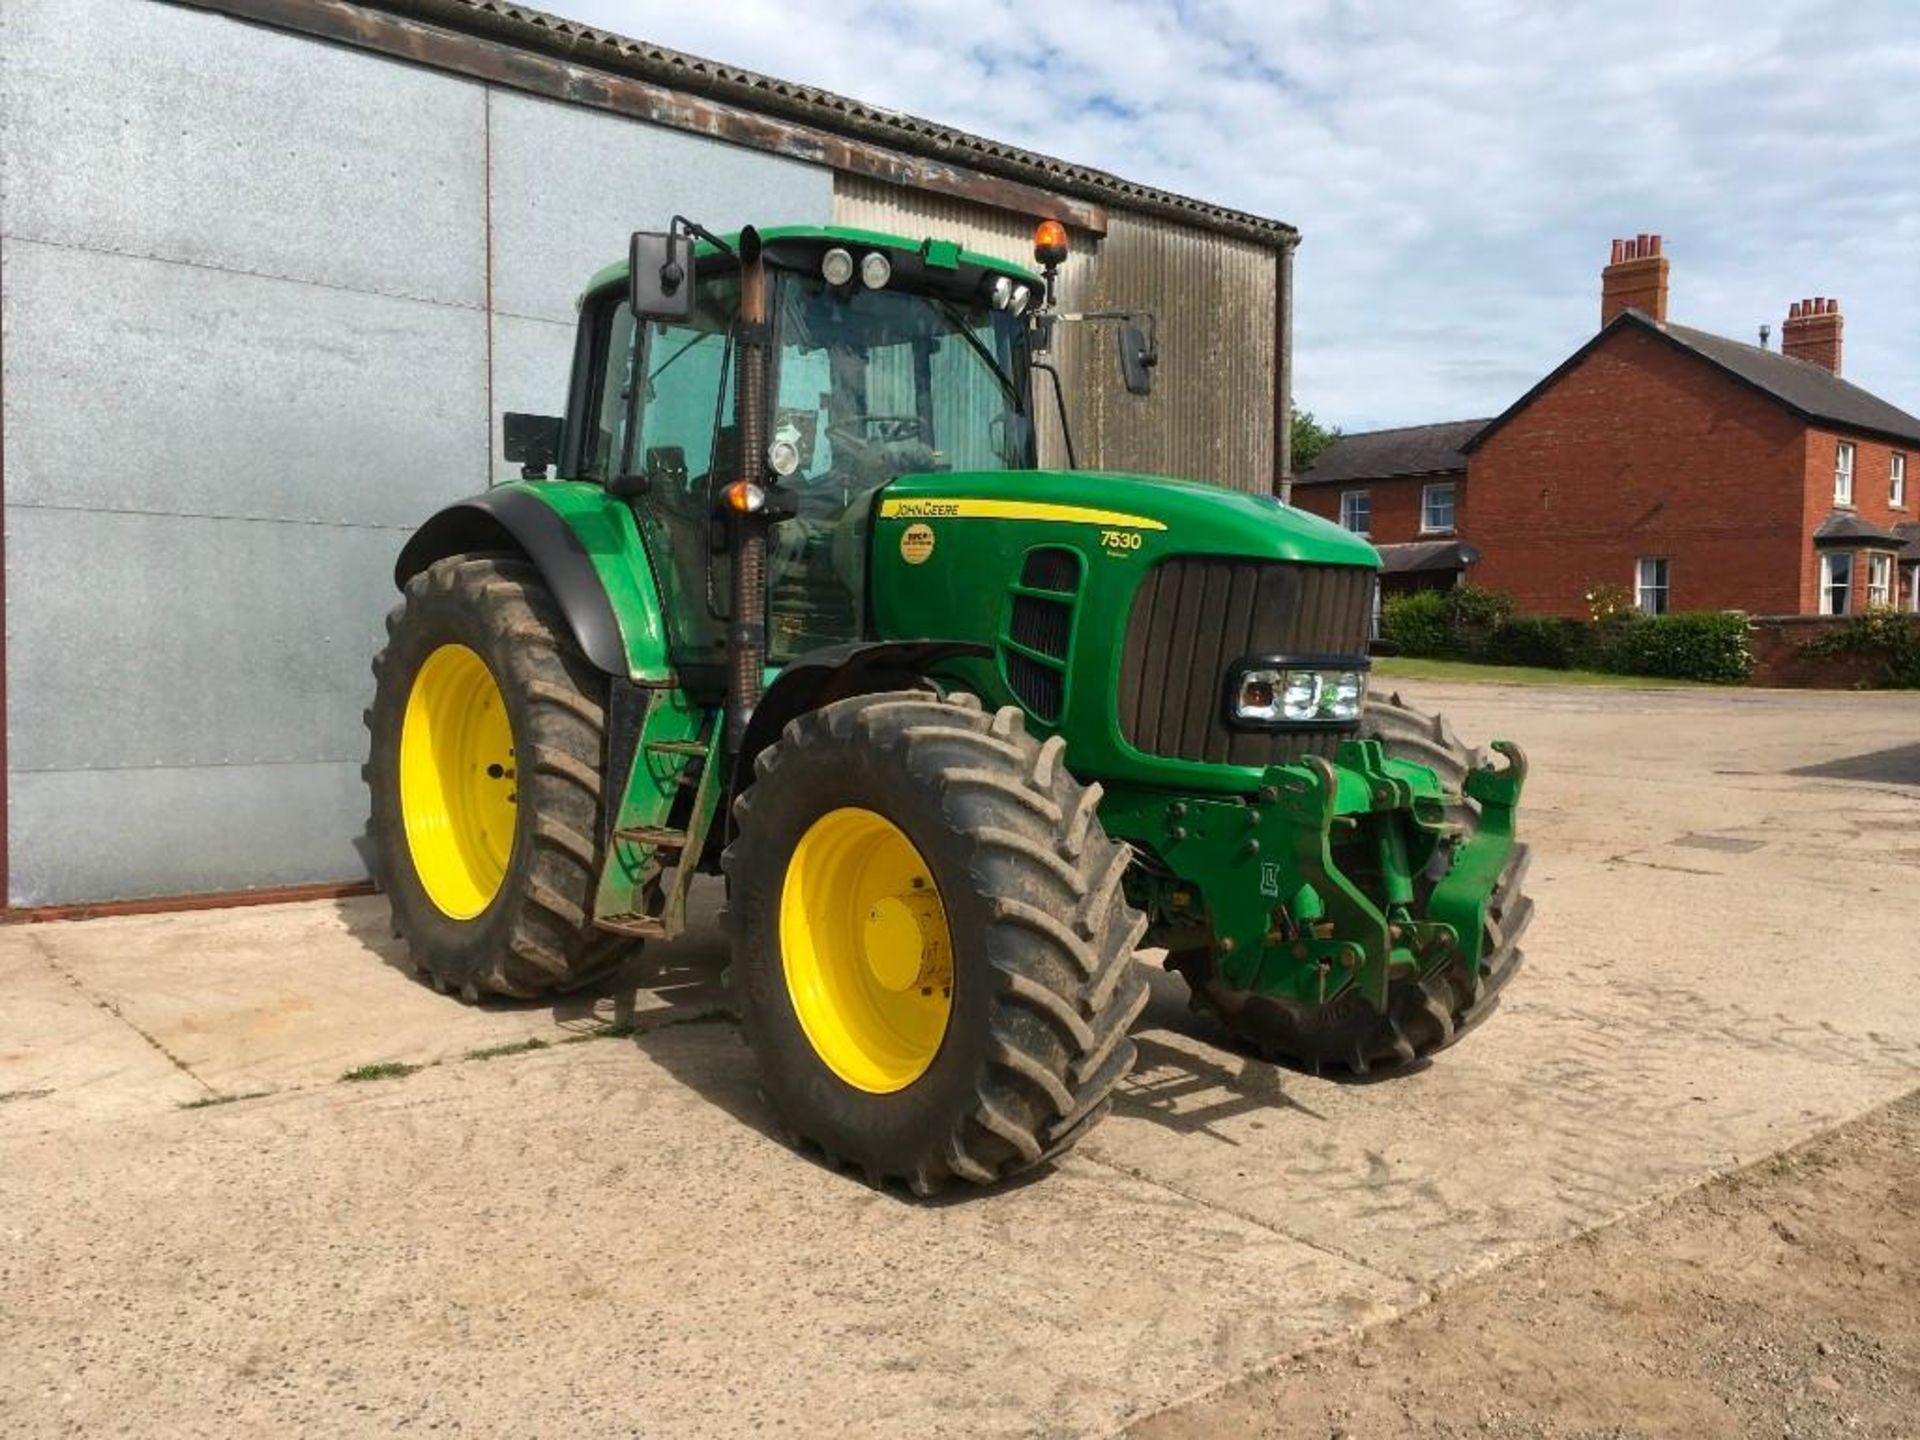 2008 John Deere 7530 tractor with auto quad gear box, 4 spool valves, pick up hitch, air seat, front - Image 6 of 14